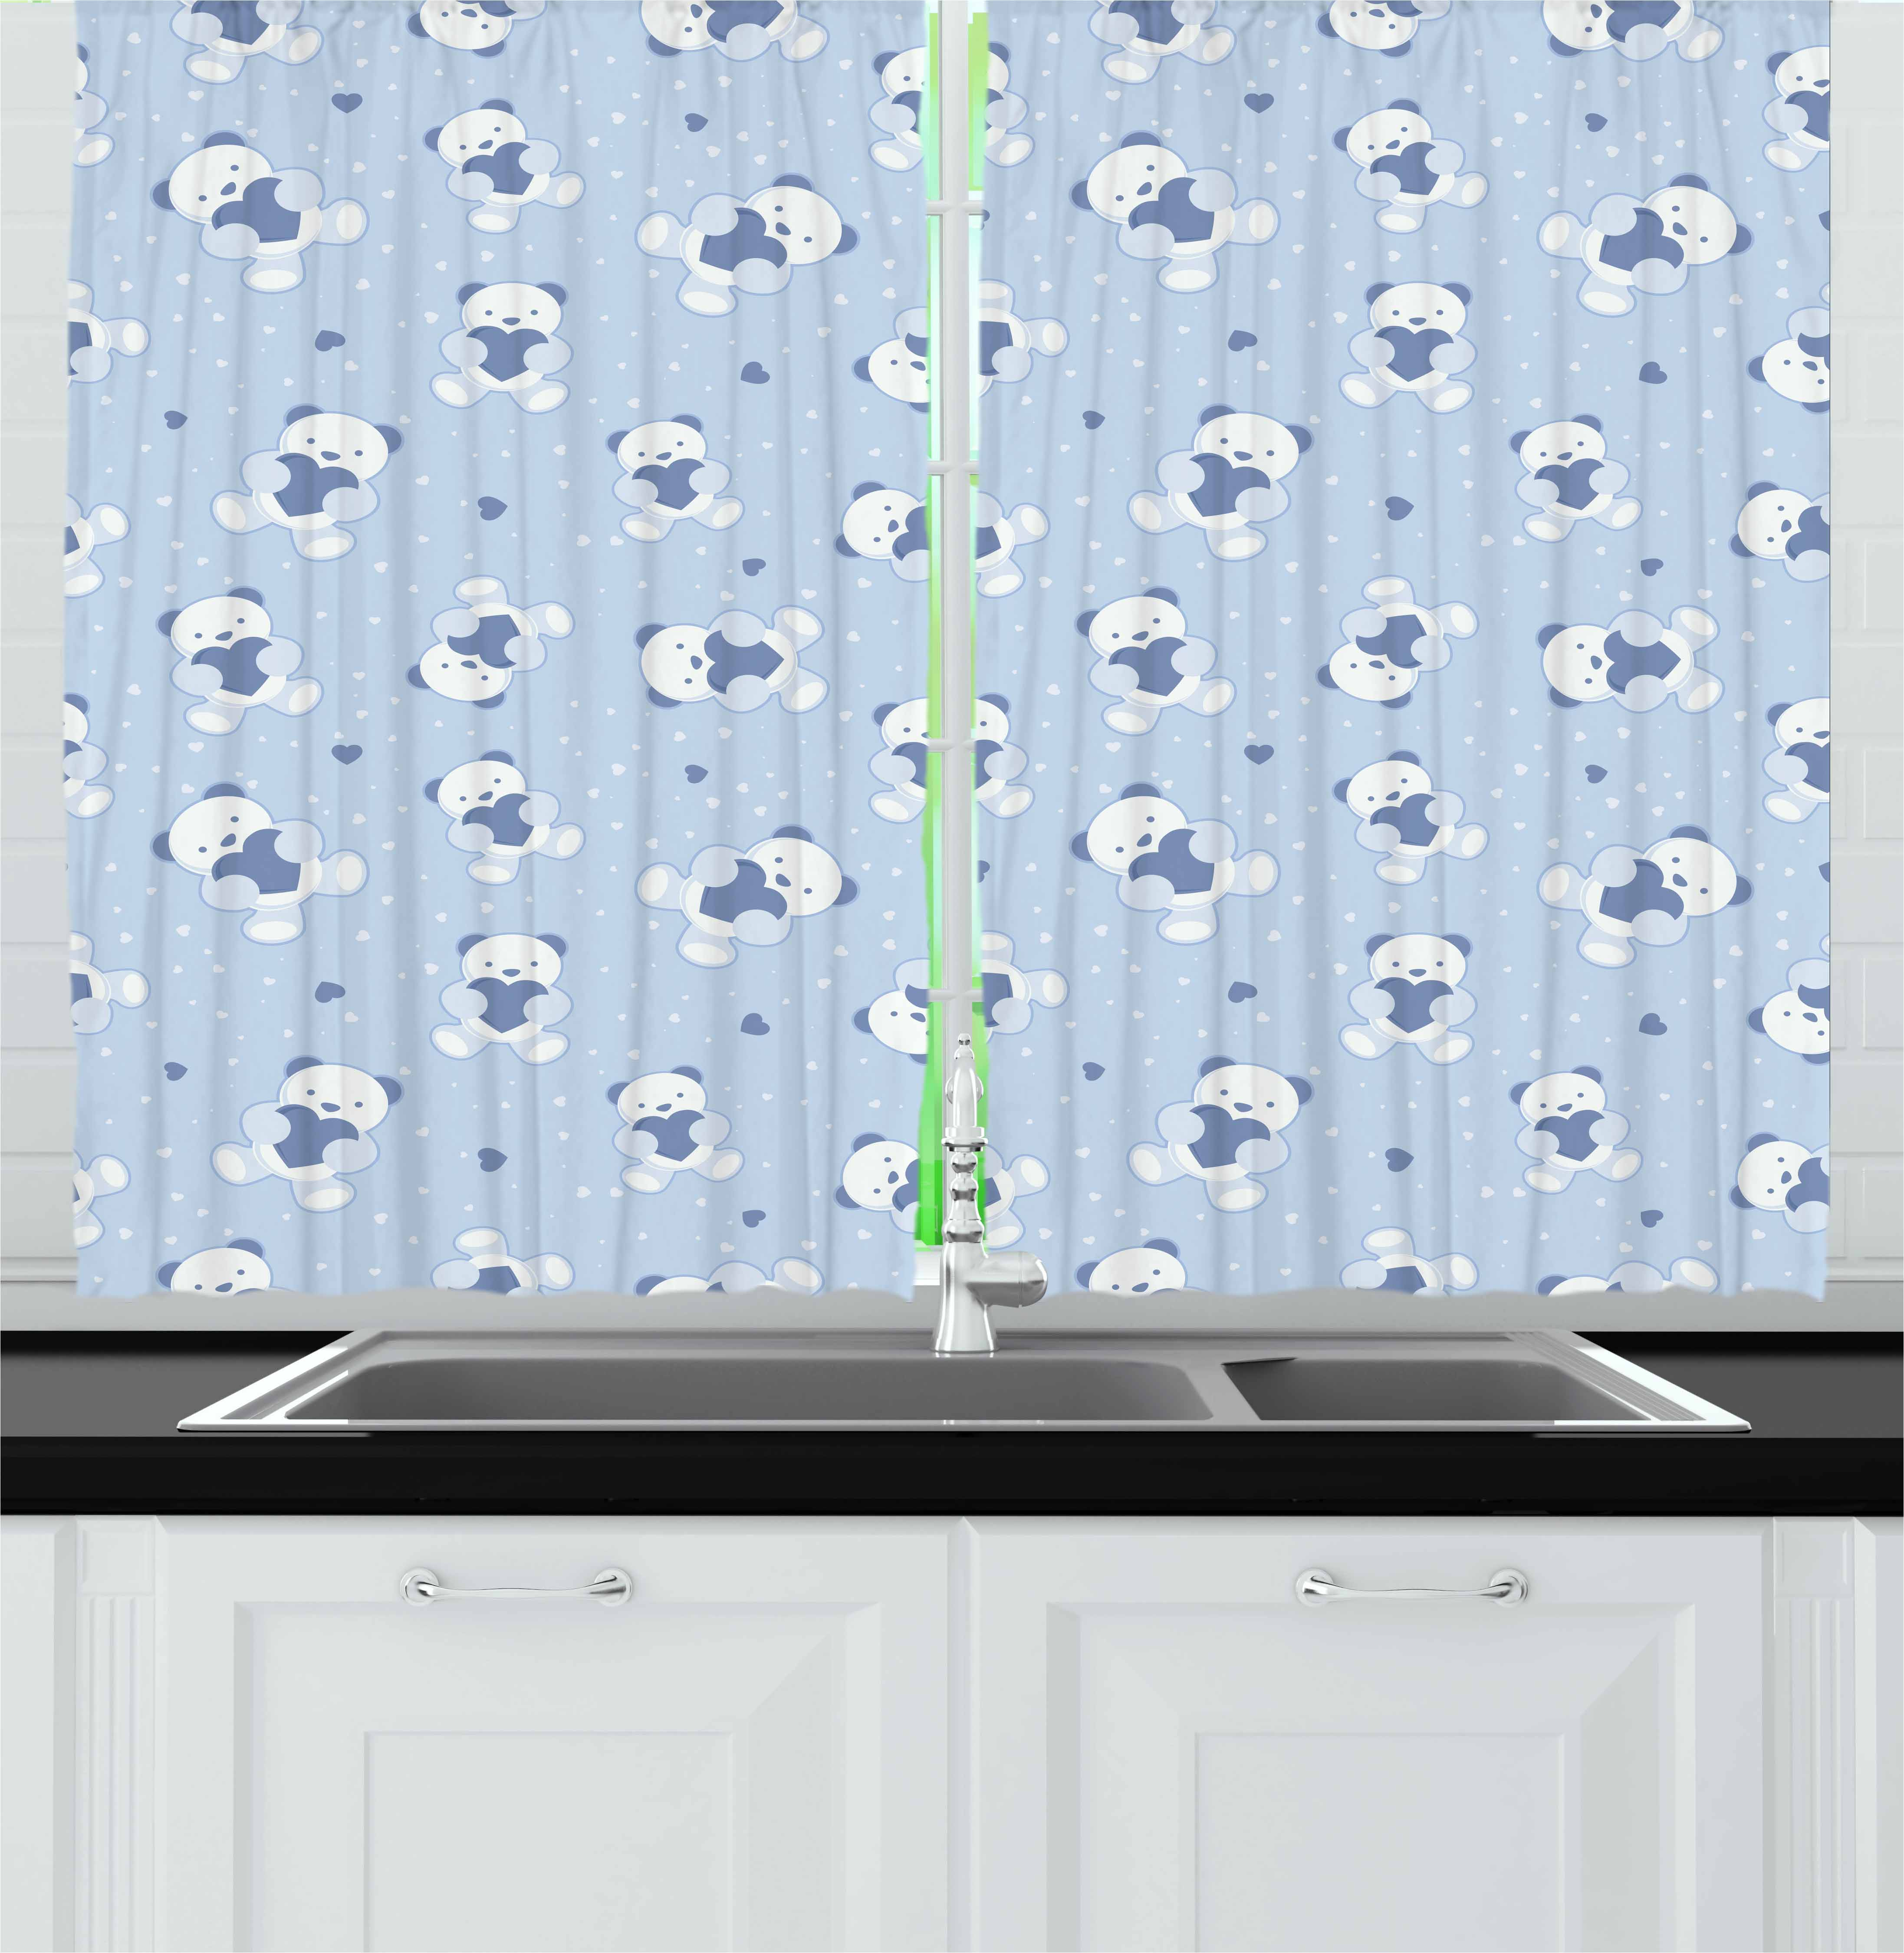 Boy's Curtains 2 Panels Set, Teddy Bears on Blue Backdrop Holding Hearts Baby Shower Theme Toddler, Window Drapes for Living Room Bedroom, 55W X 39L Inches, Baby Blue Cadet Blue White, by Ambesonne